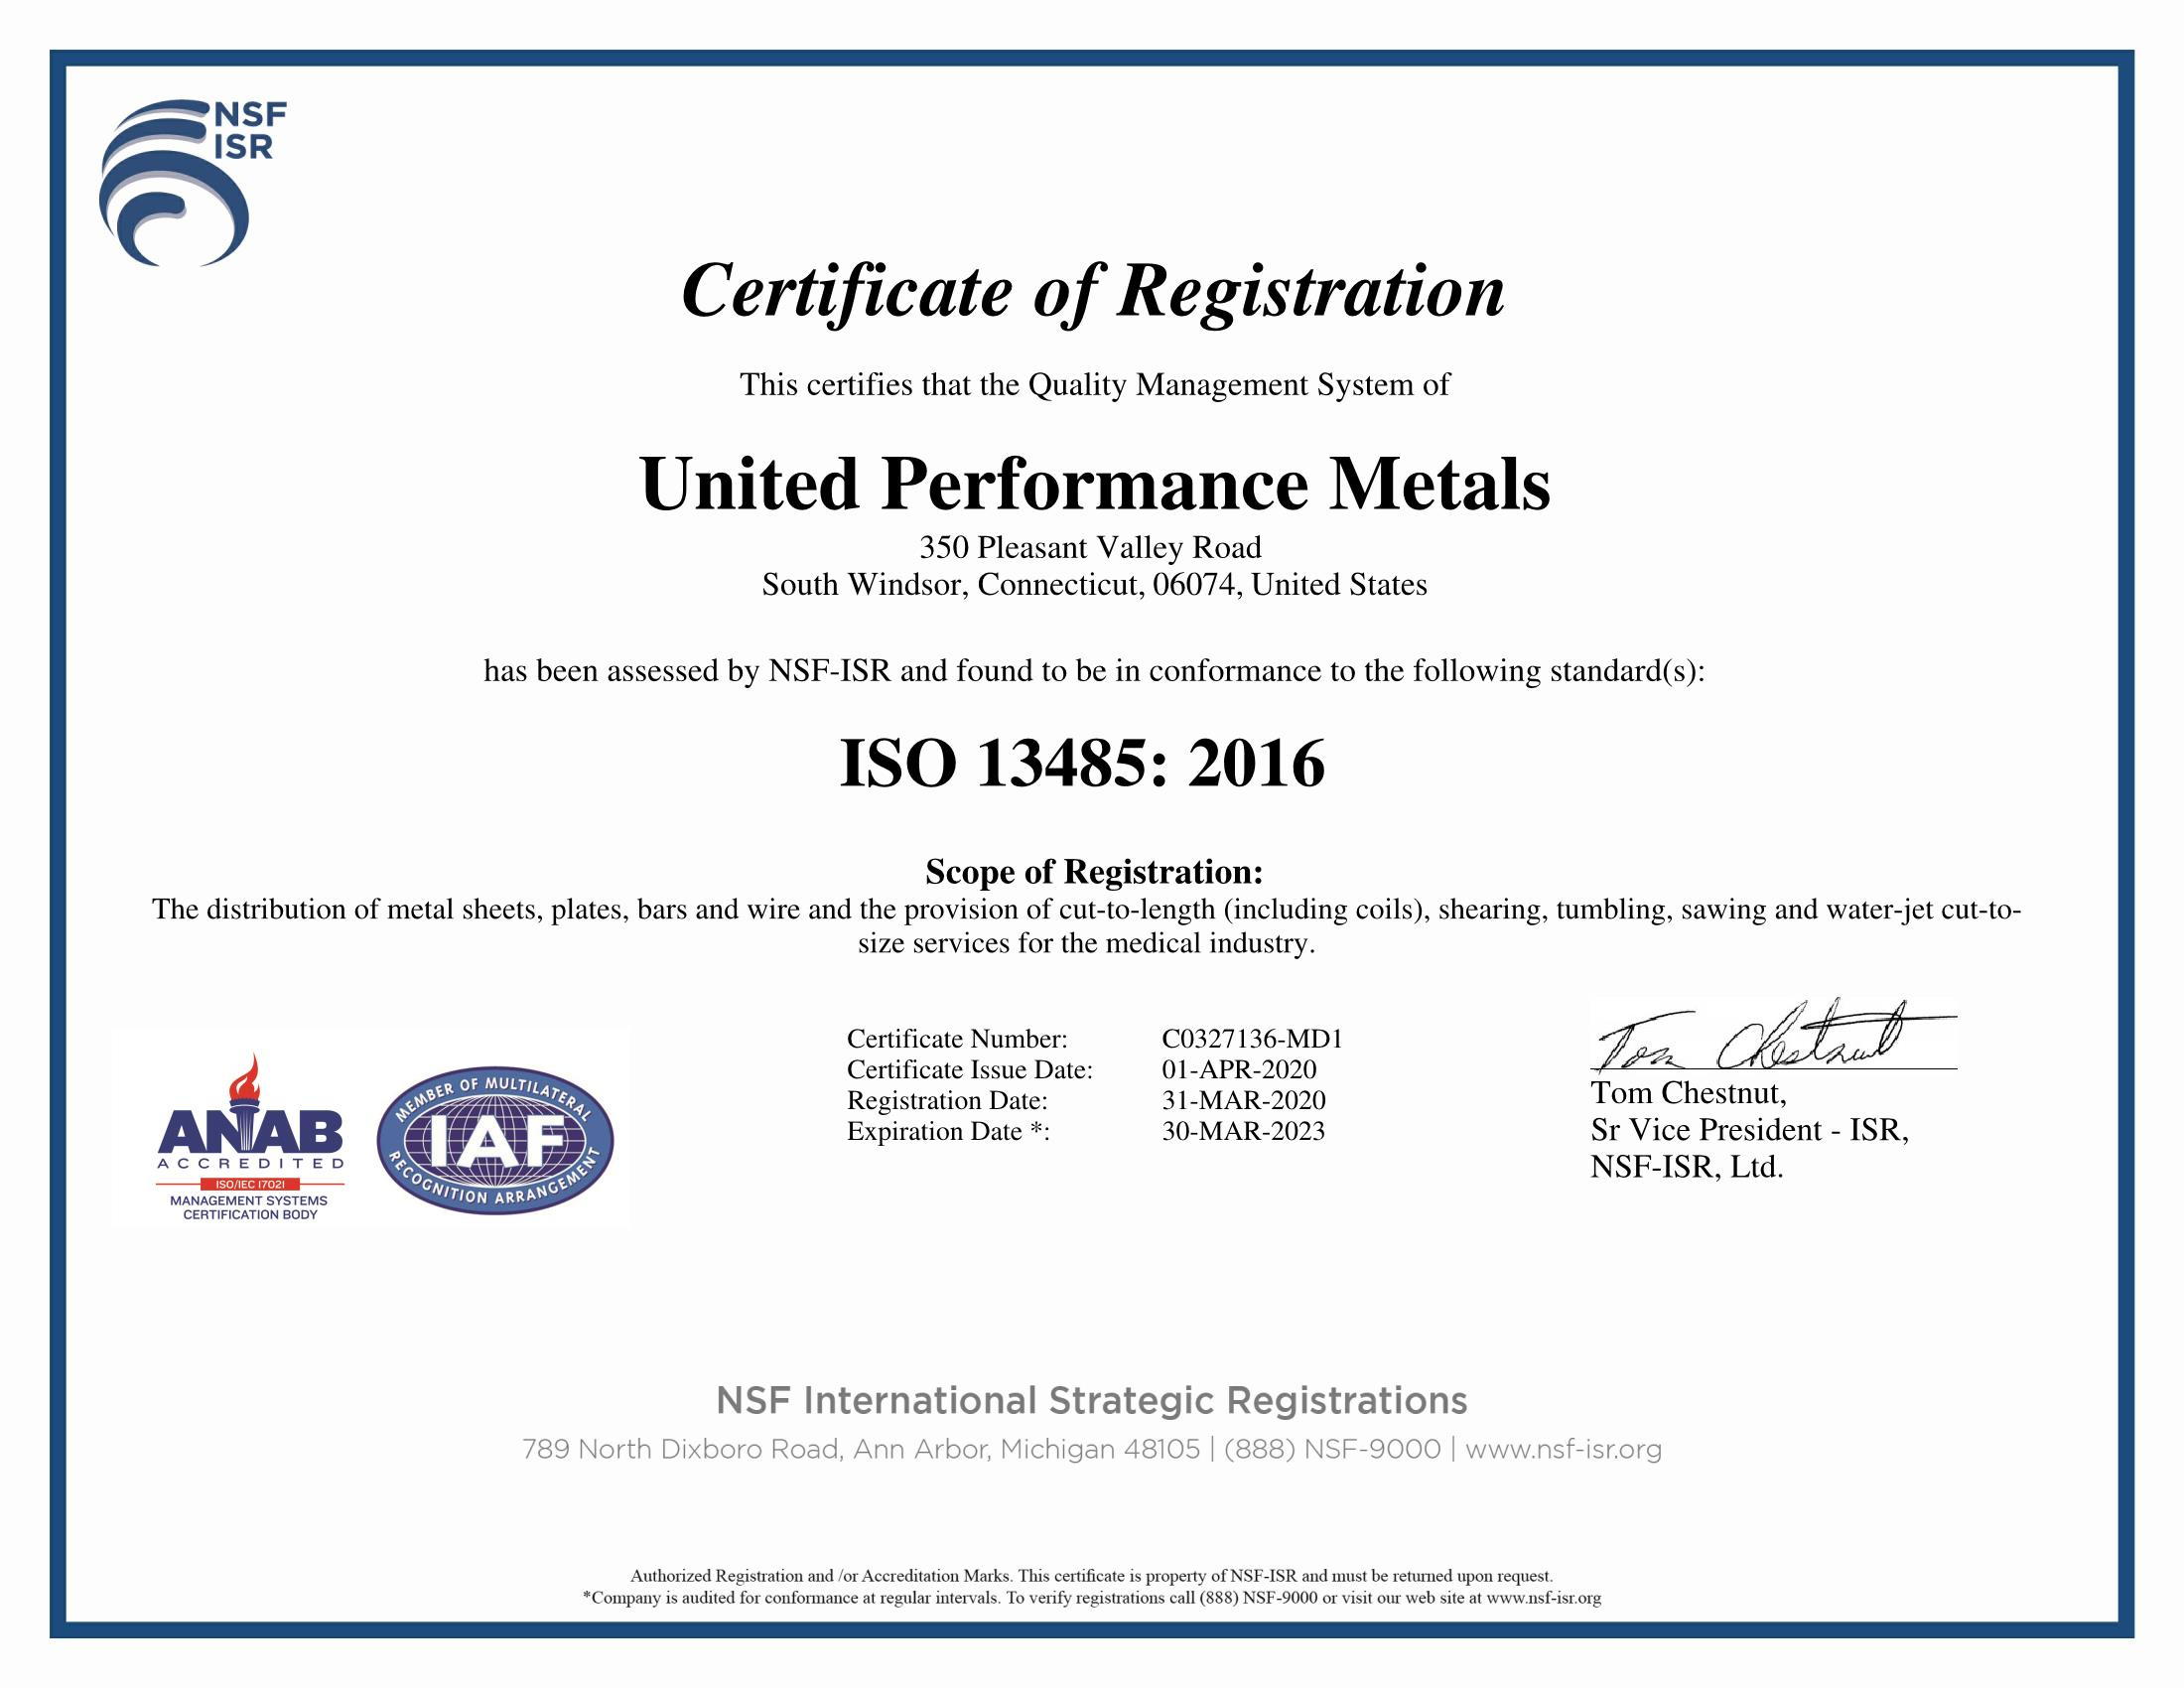 United Performance Metals Achieves ISO 13485:2016 Approval in Connecticut Service Center